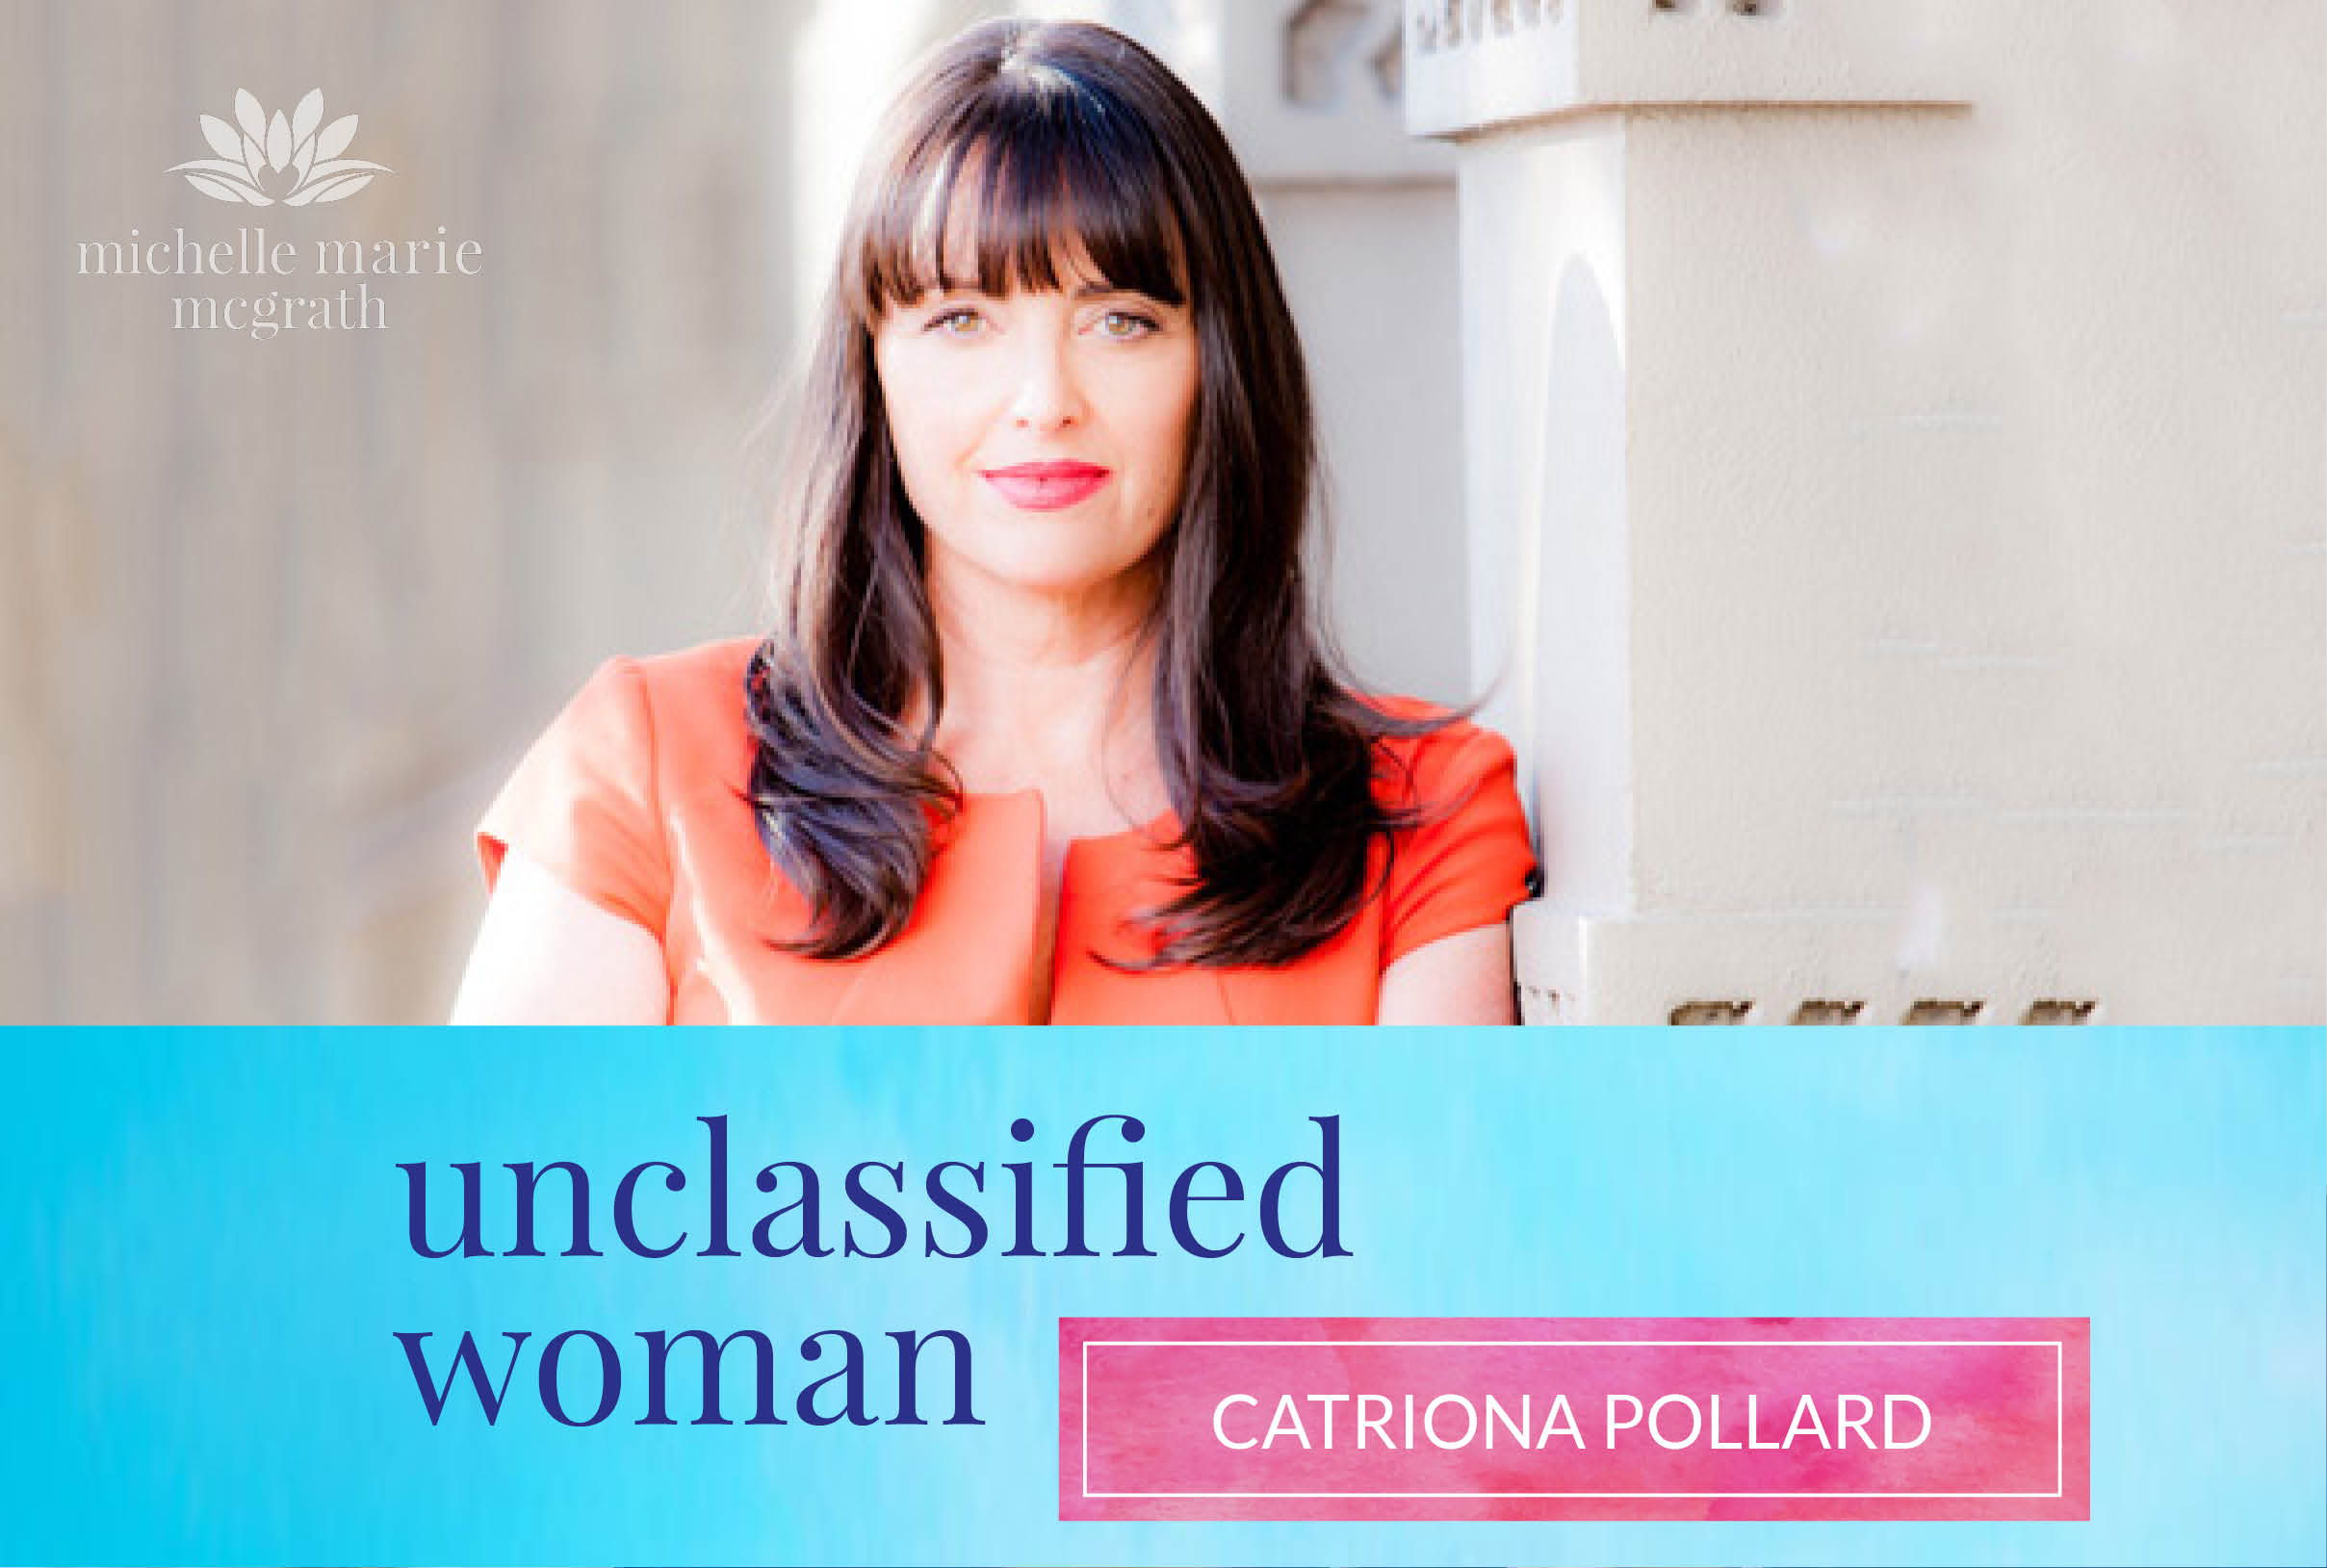 30: From Unknown to Expert with Catriona Pollard